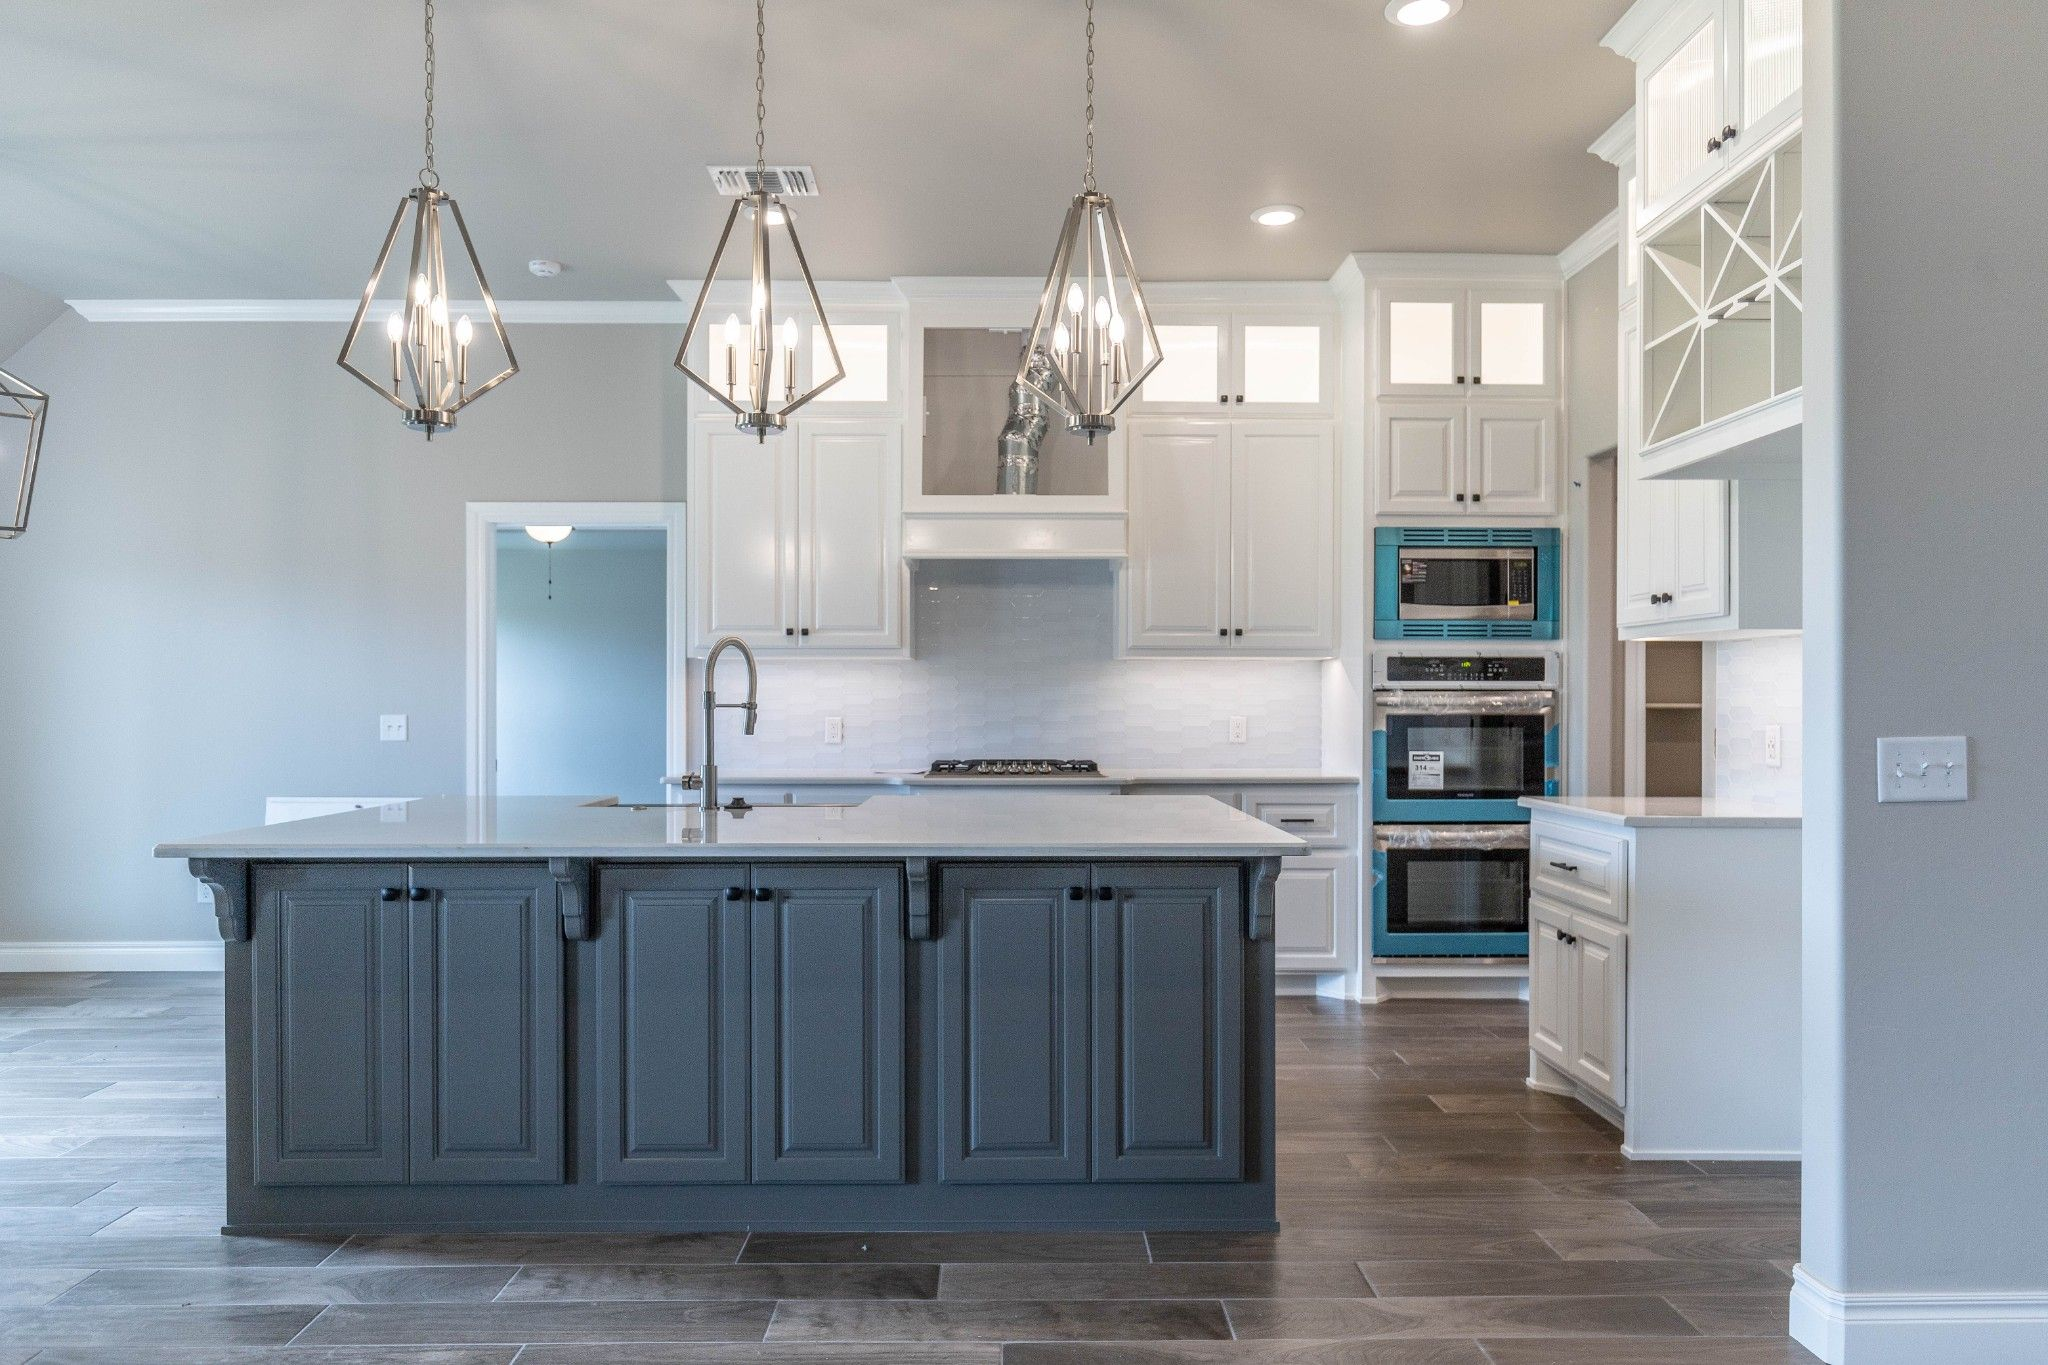 Kitchen featured in the Cornerstone By Homes By Taber in Oklahoma City, OK